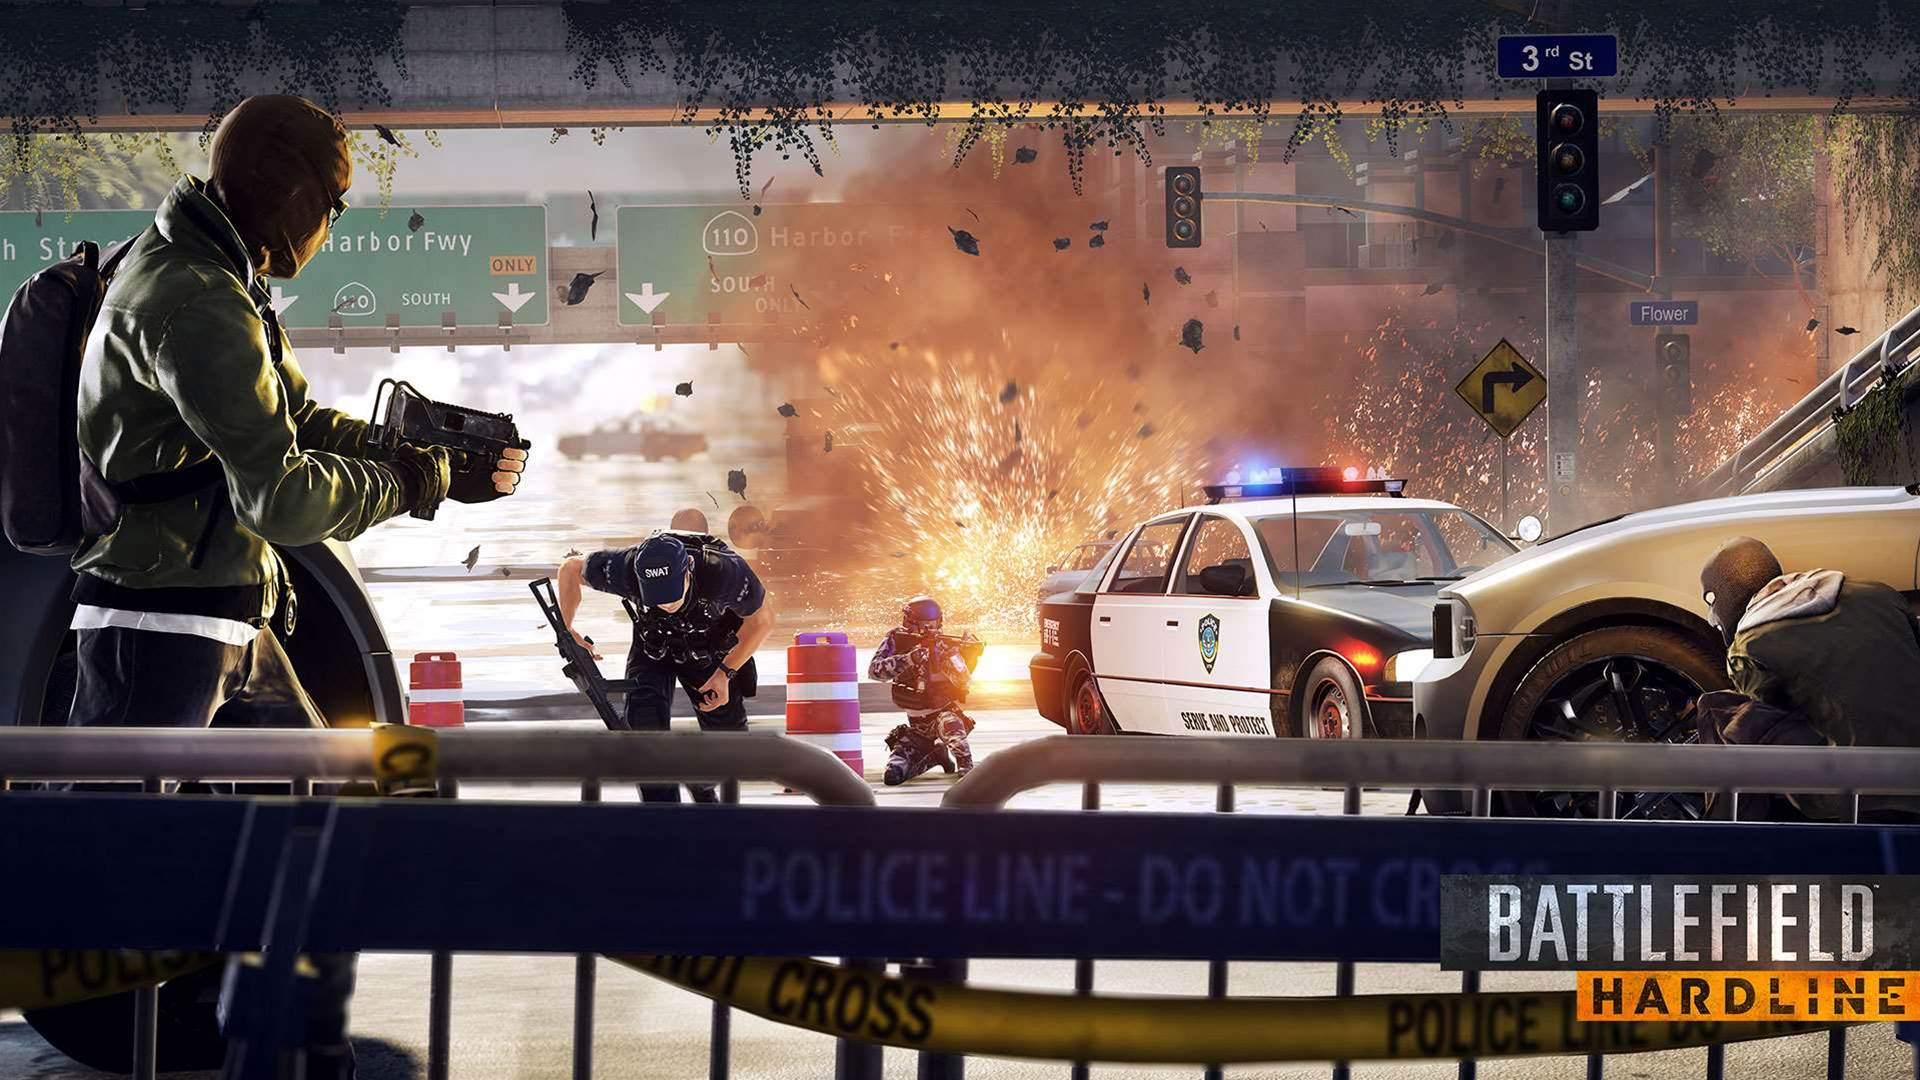 Battlefield: Hardline PC specs revealed - you will need a 64-bit OS